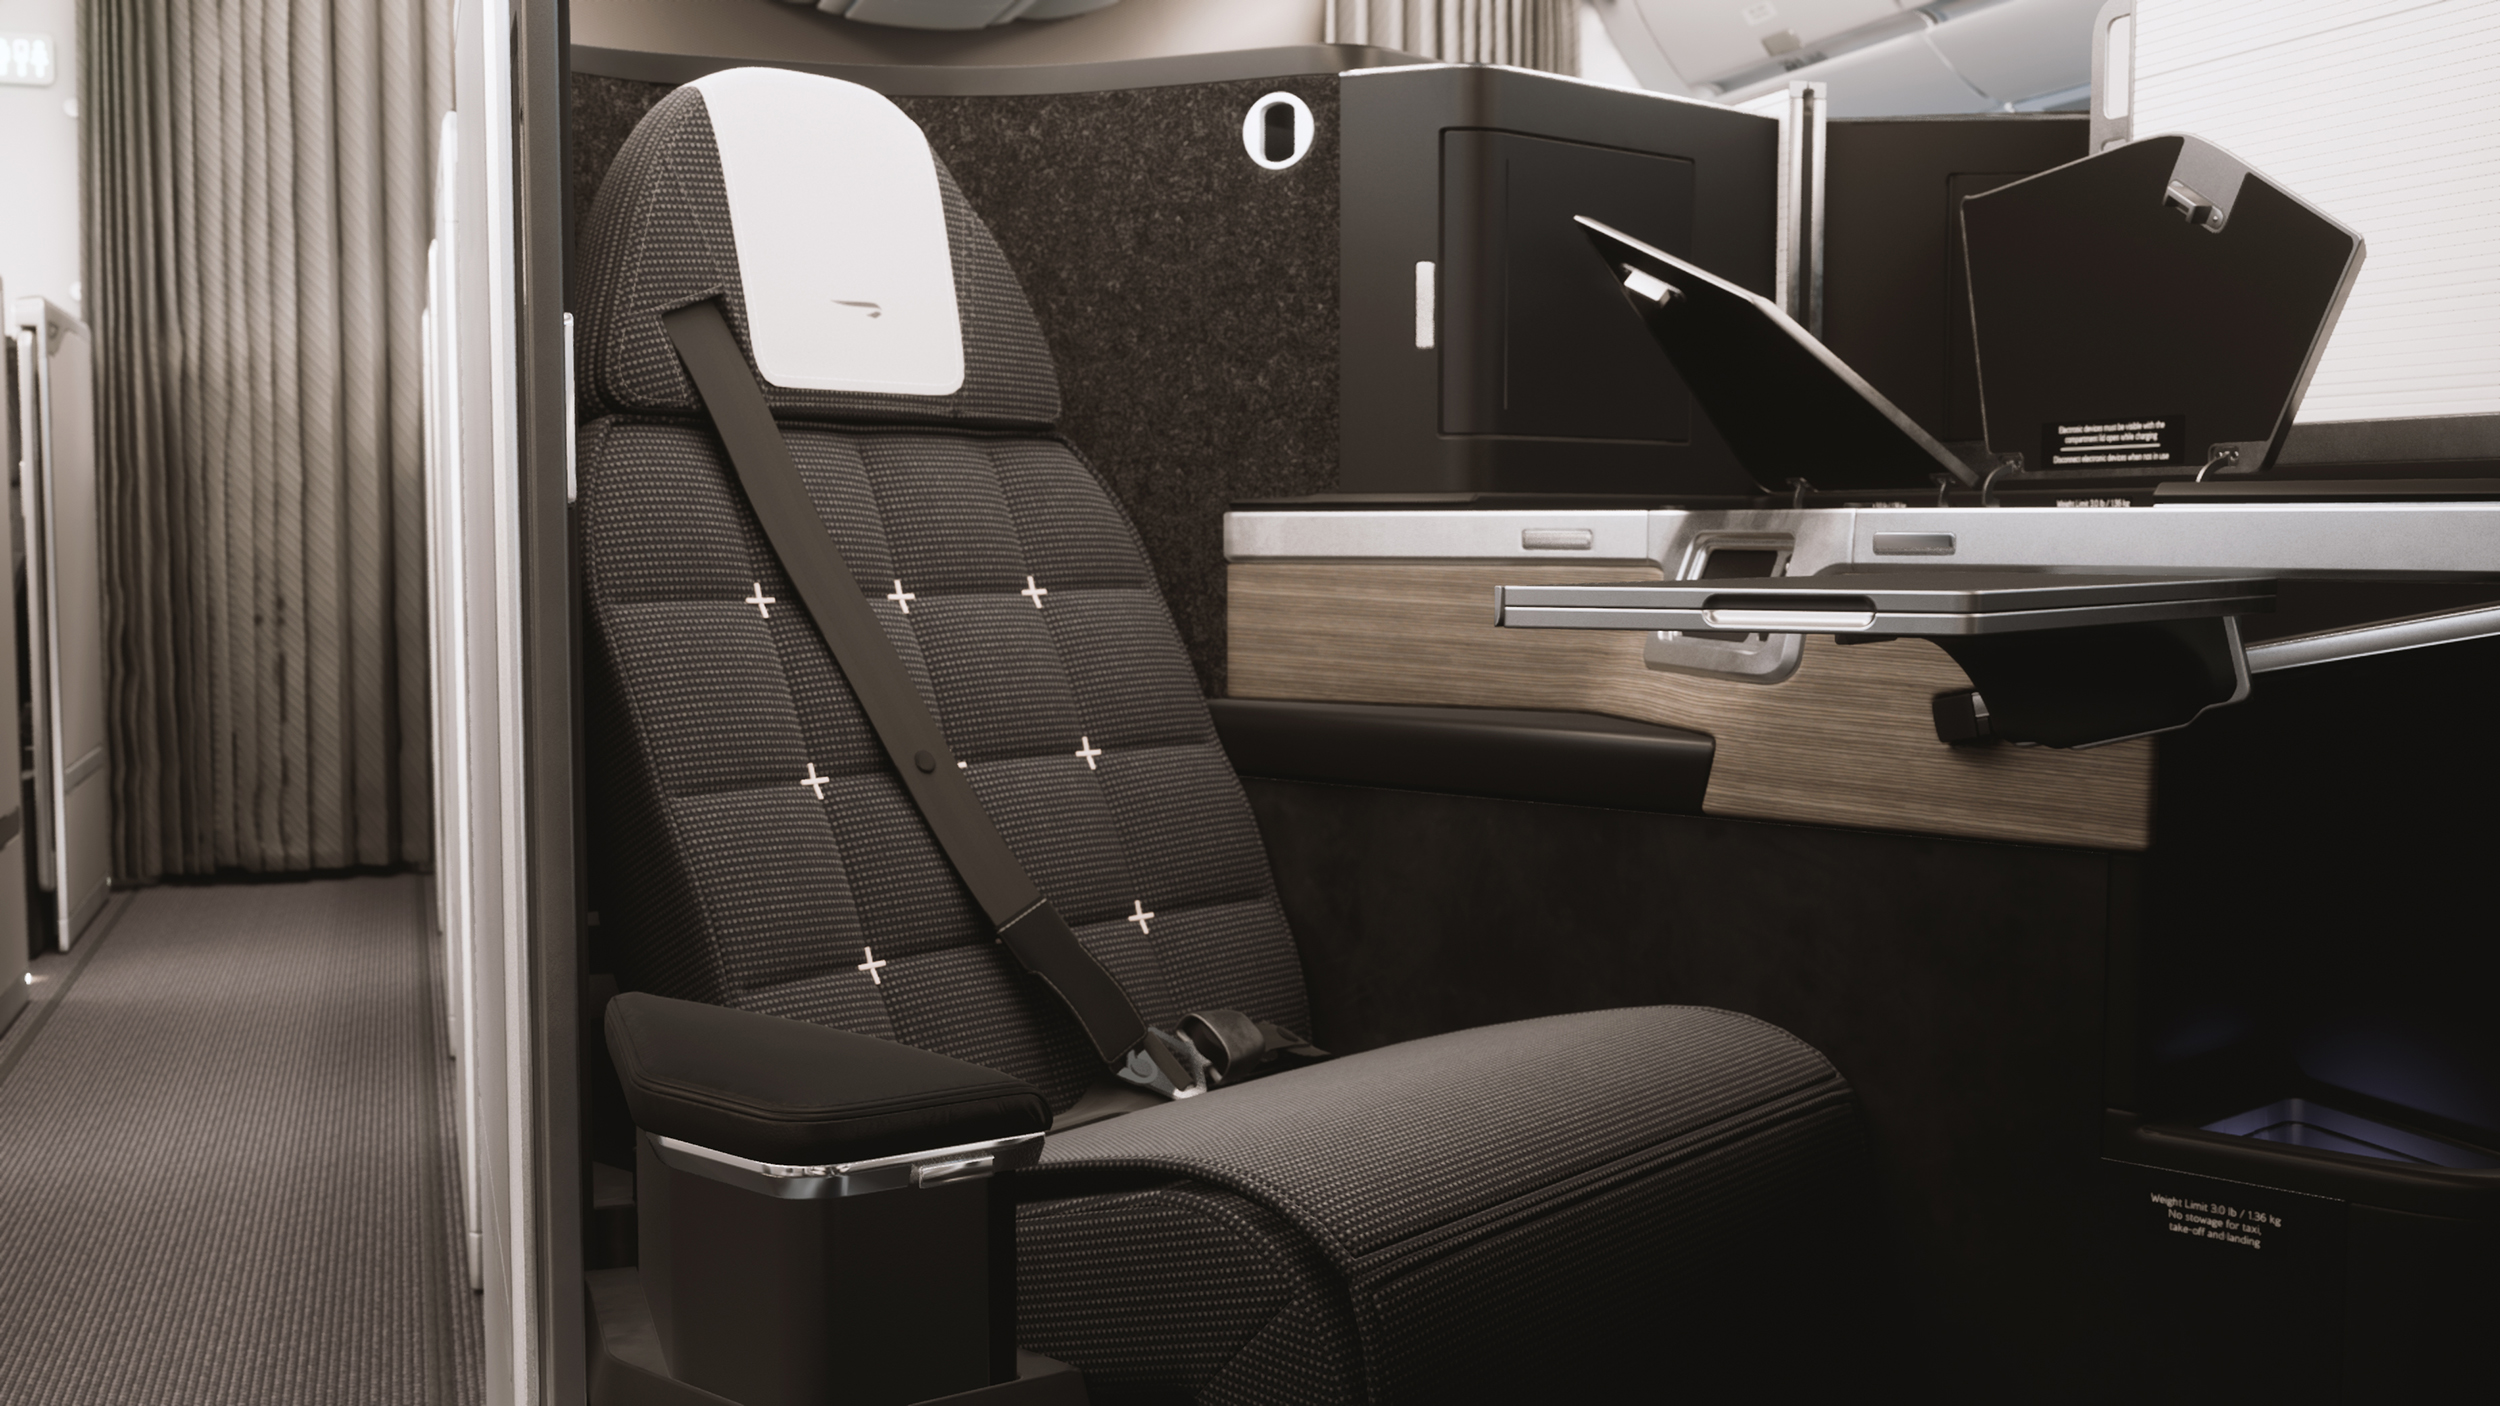 BA reveals new Business Class 'Club Suite', but when is it coming to Asia?